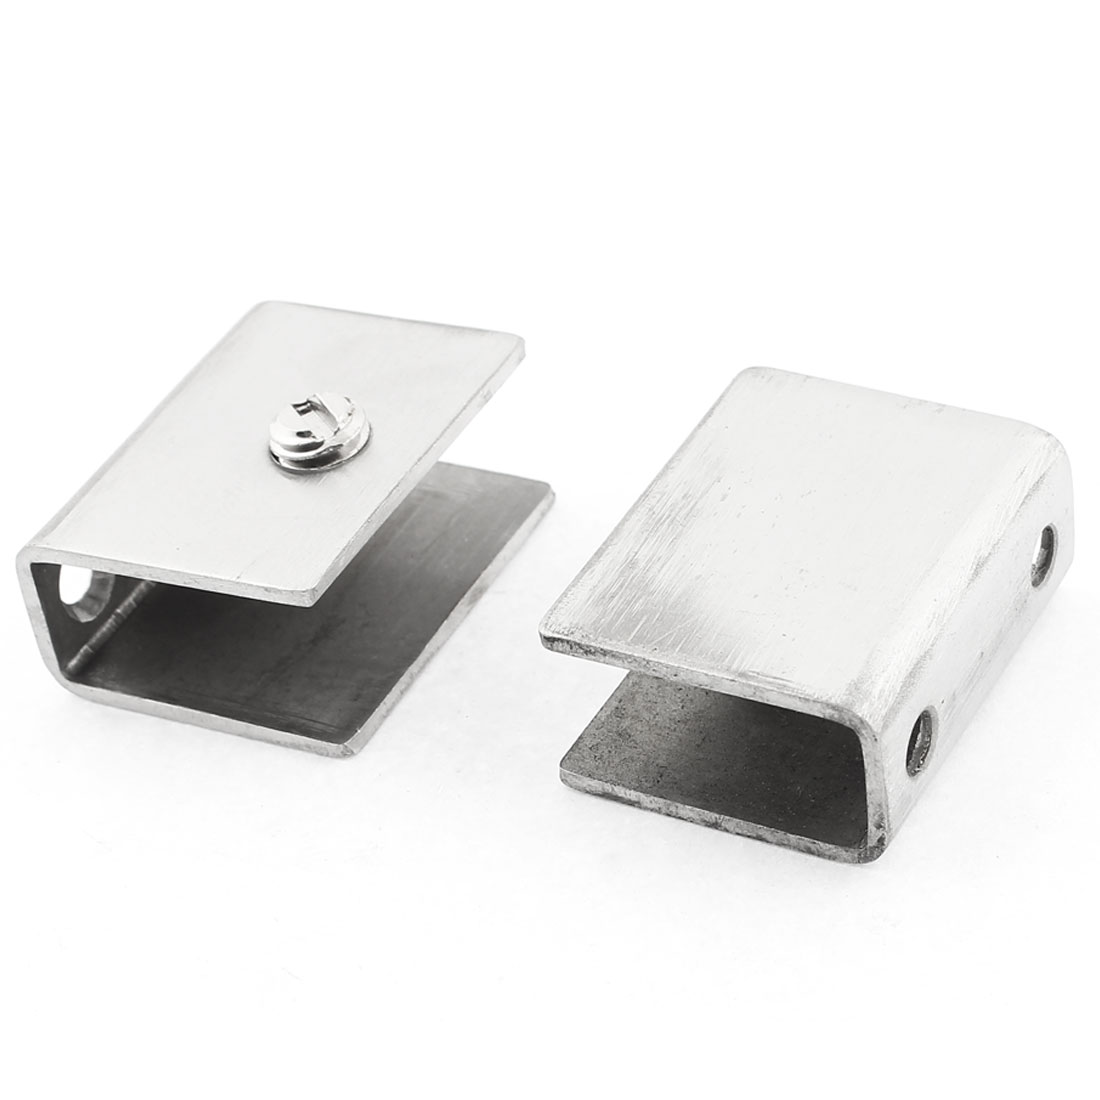 Rectangle Shape Glass Shelf Clamp Clips Holder Bracket Hardware 2pcs